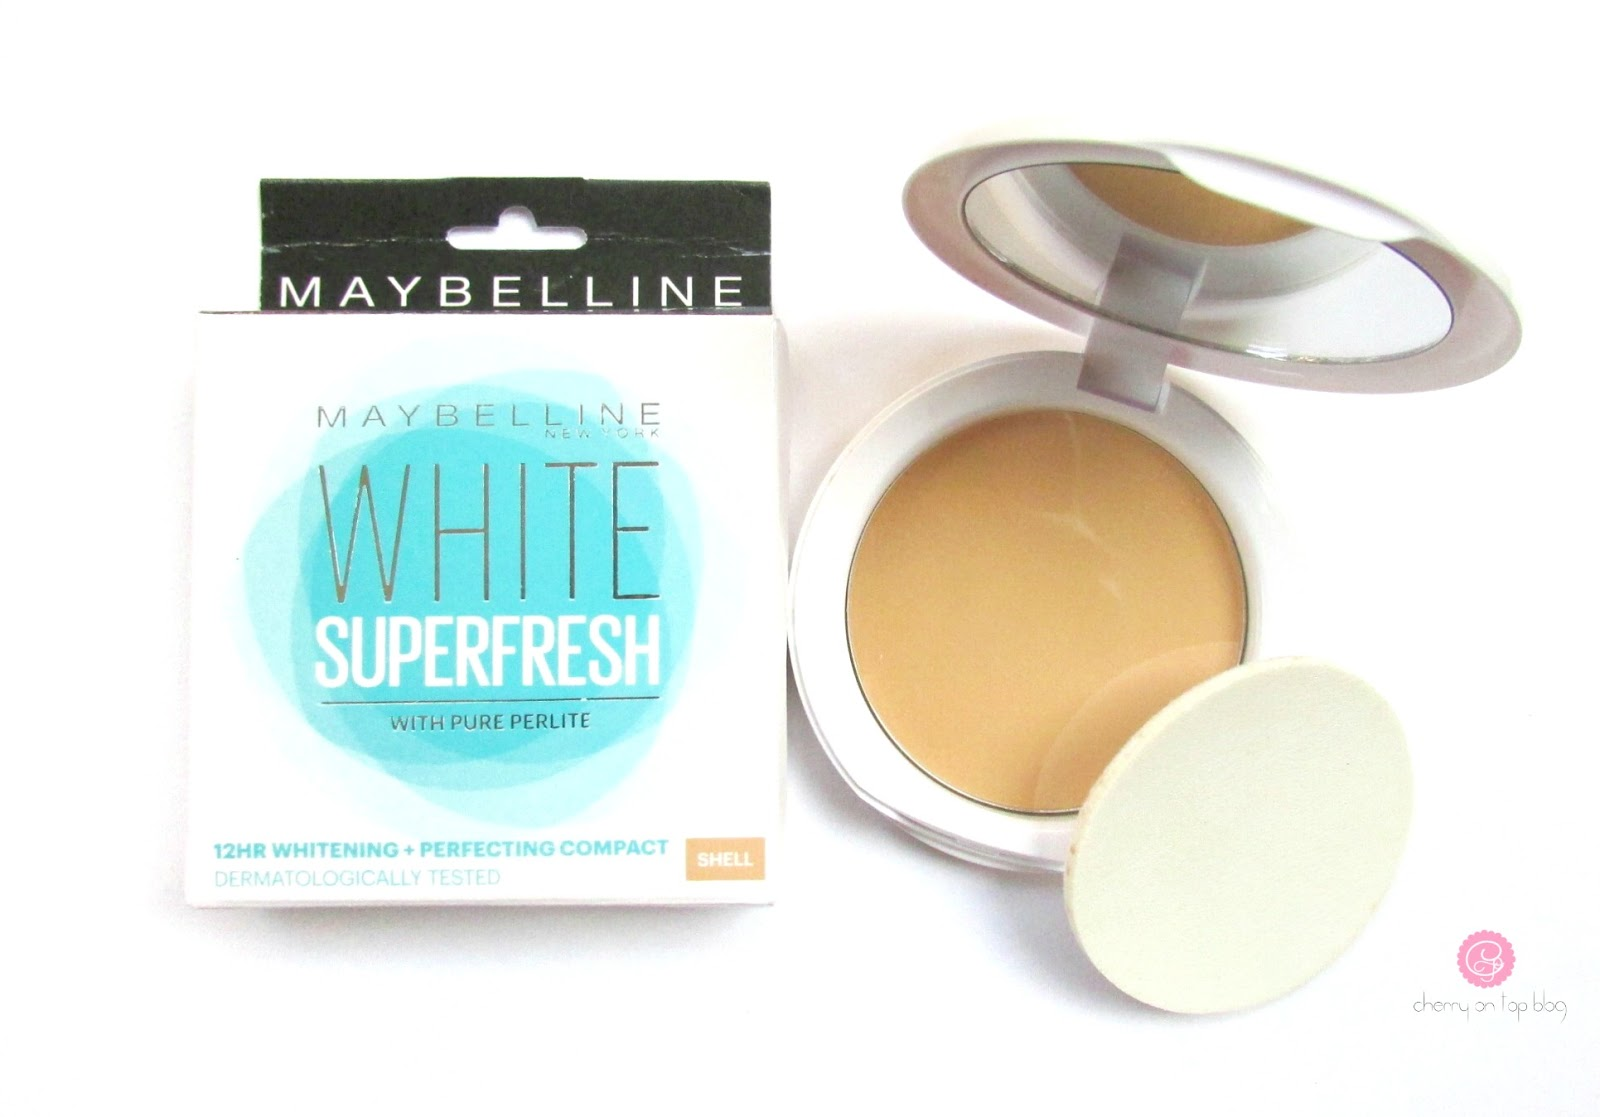 Maybelline White Superfresh 12hr Whitening+Perfecting Compact| Review, Swatch, Price